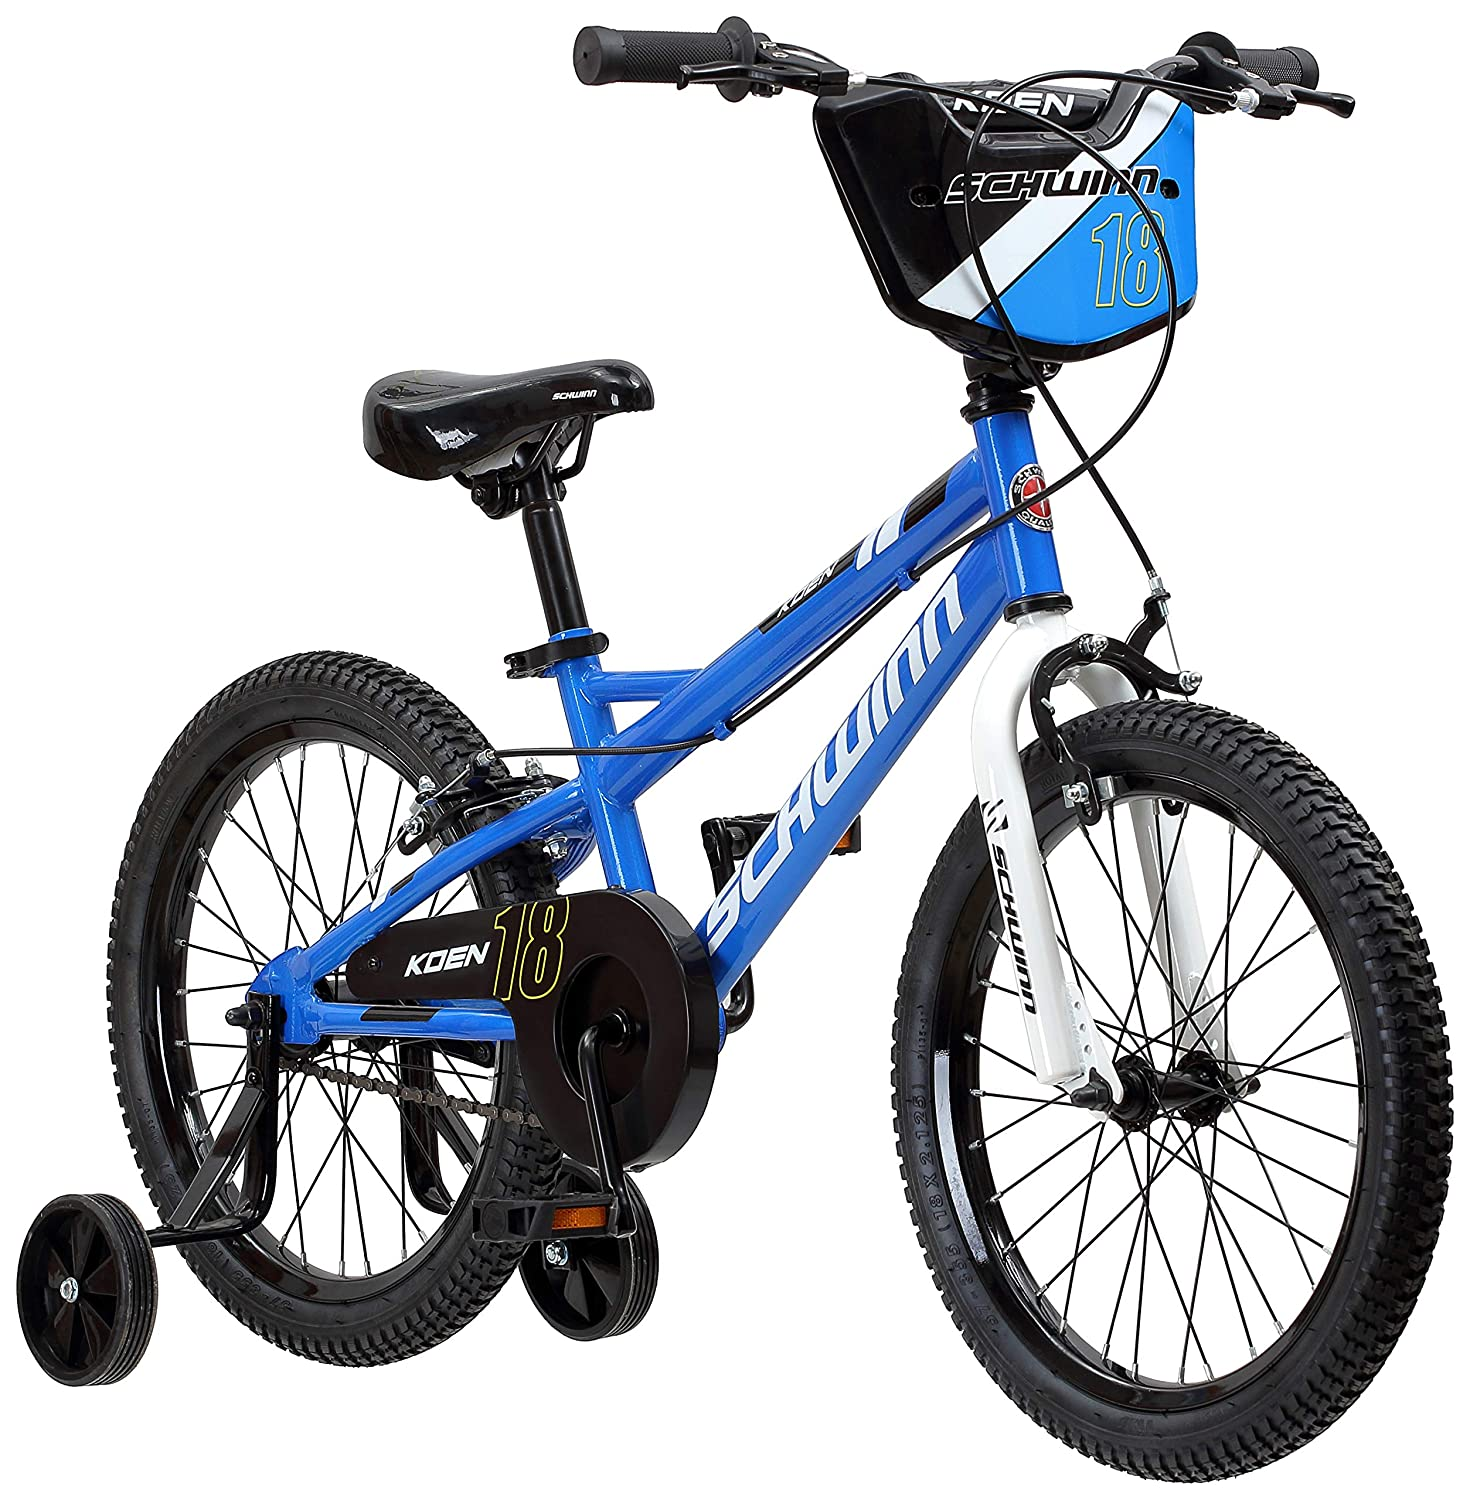 Schwinn Koen Boy s Bike, Featuring SmartStart Frame to Fit Your Child s Proportions